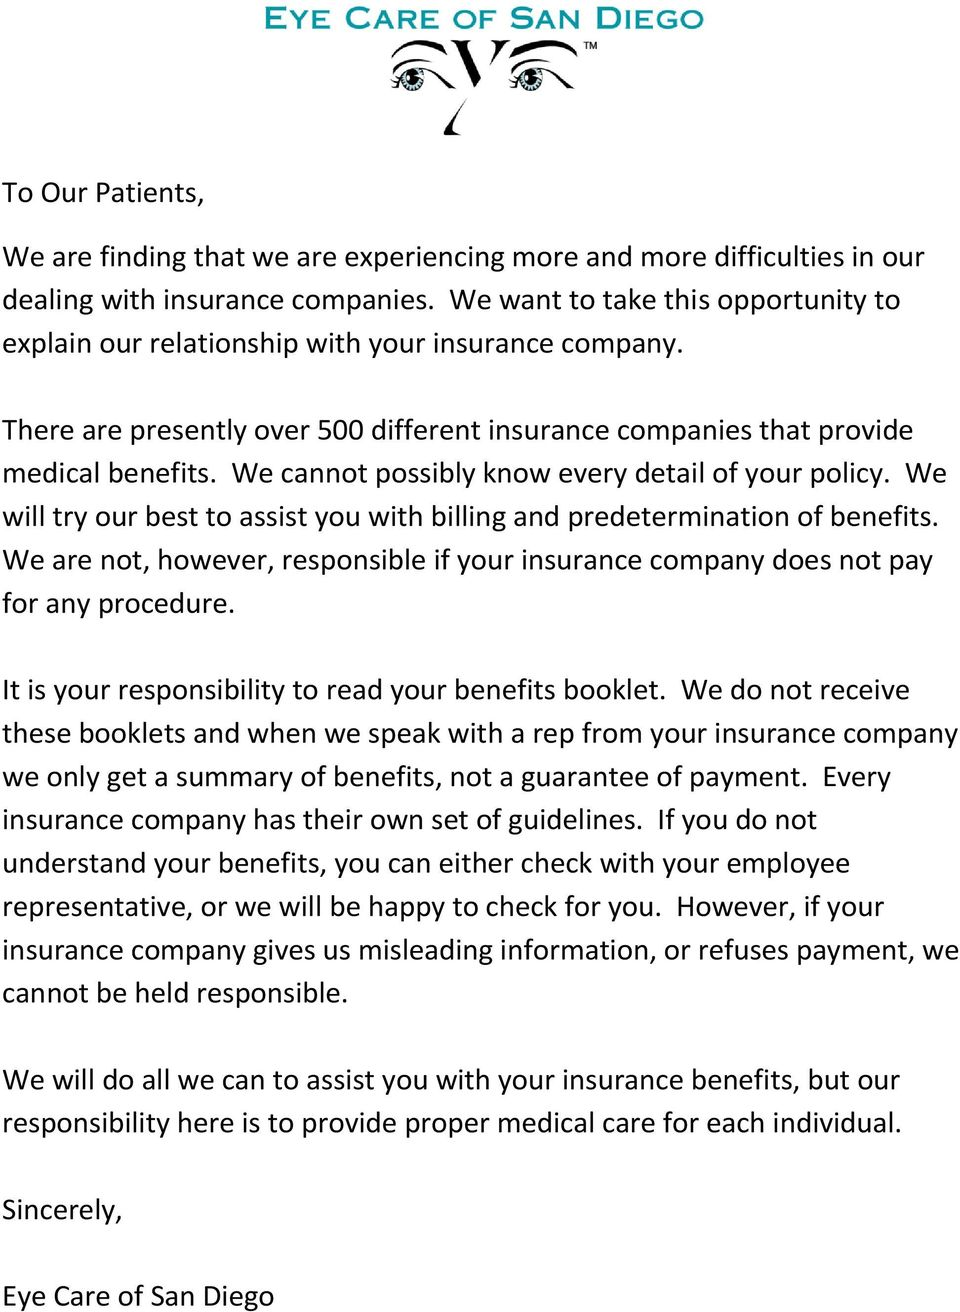 We cannot possibly know every detail of your policy. We will try our best to assist you with billing and predetermination of benefits.